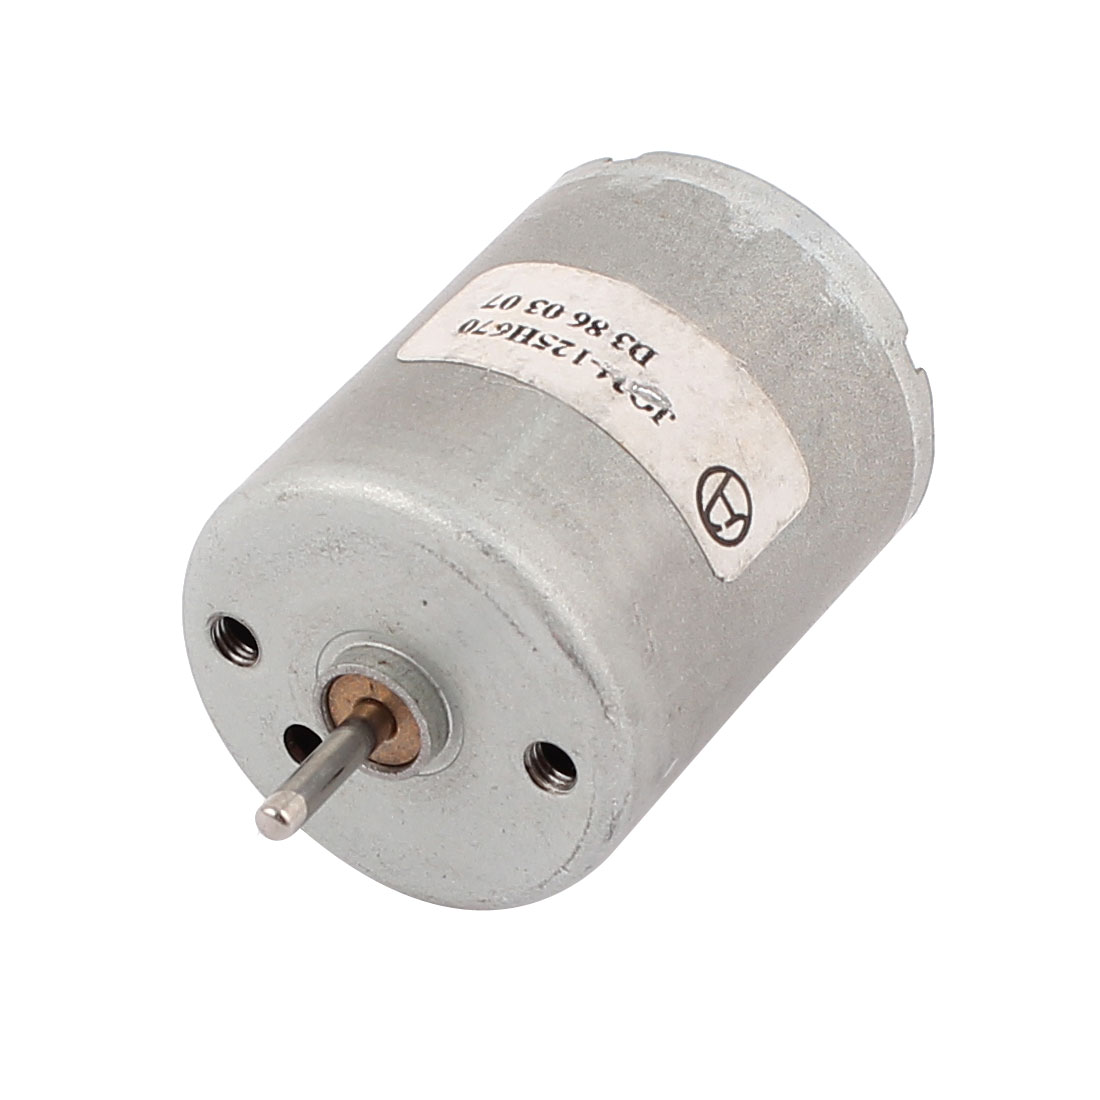 DC 3-12V 21500RPM Rotary Speed High Torque Electric Motor